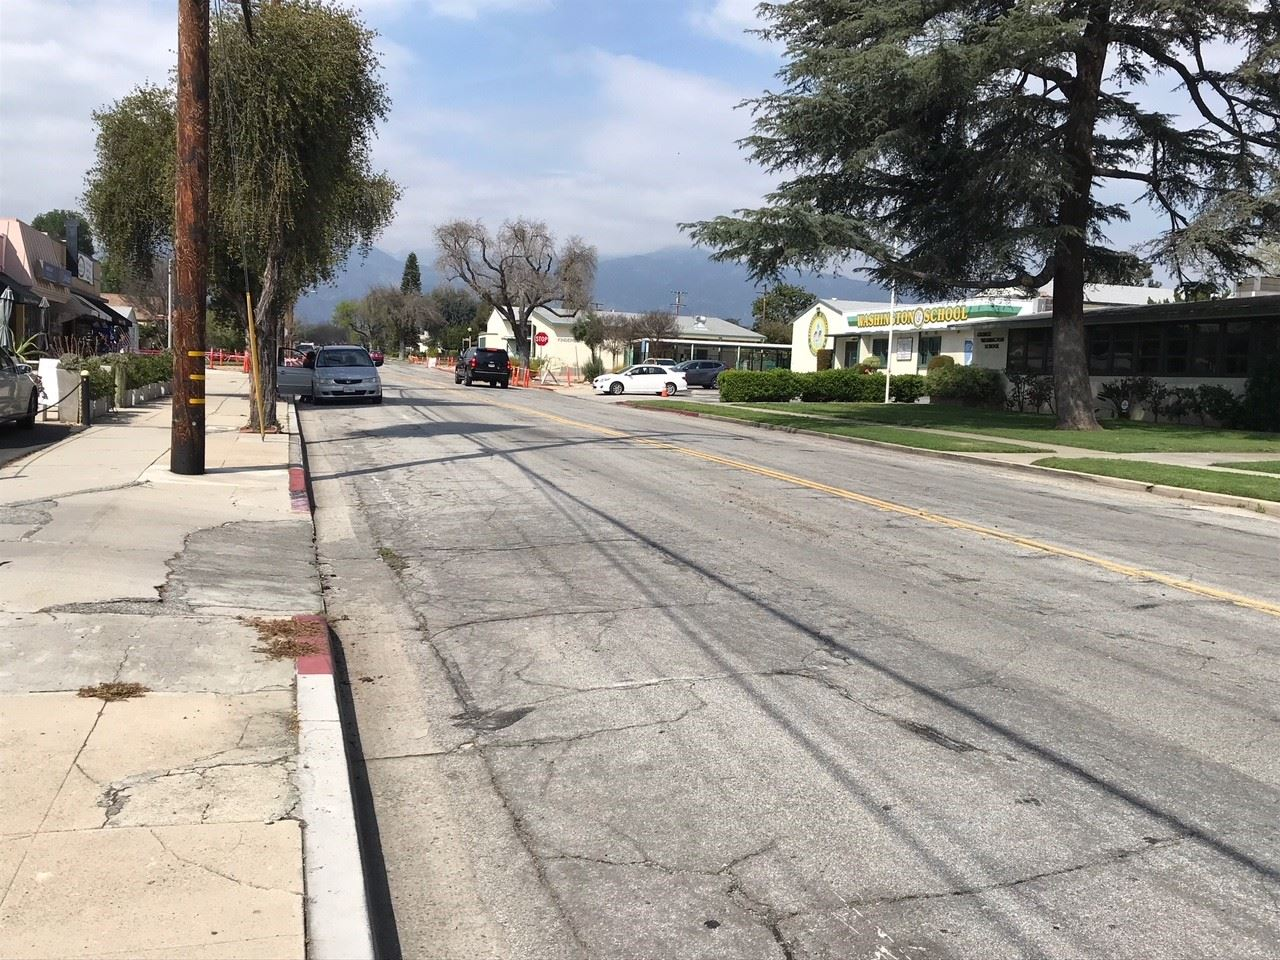 Public Works to begin pavement work on San Marino Avenue